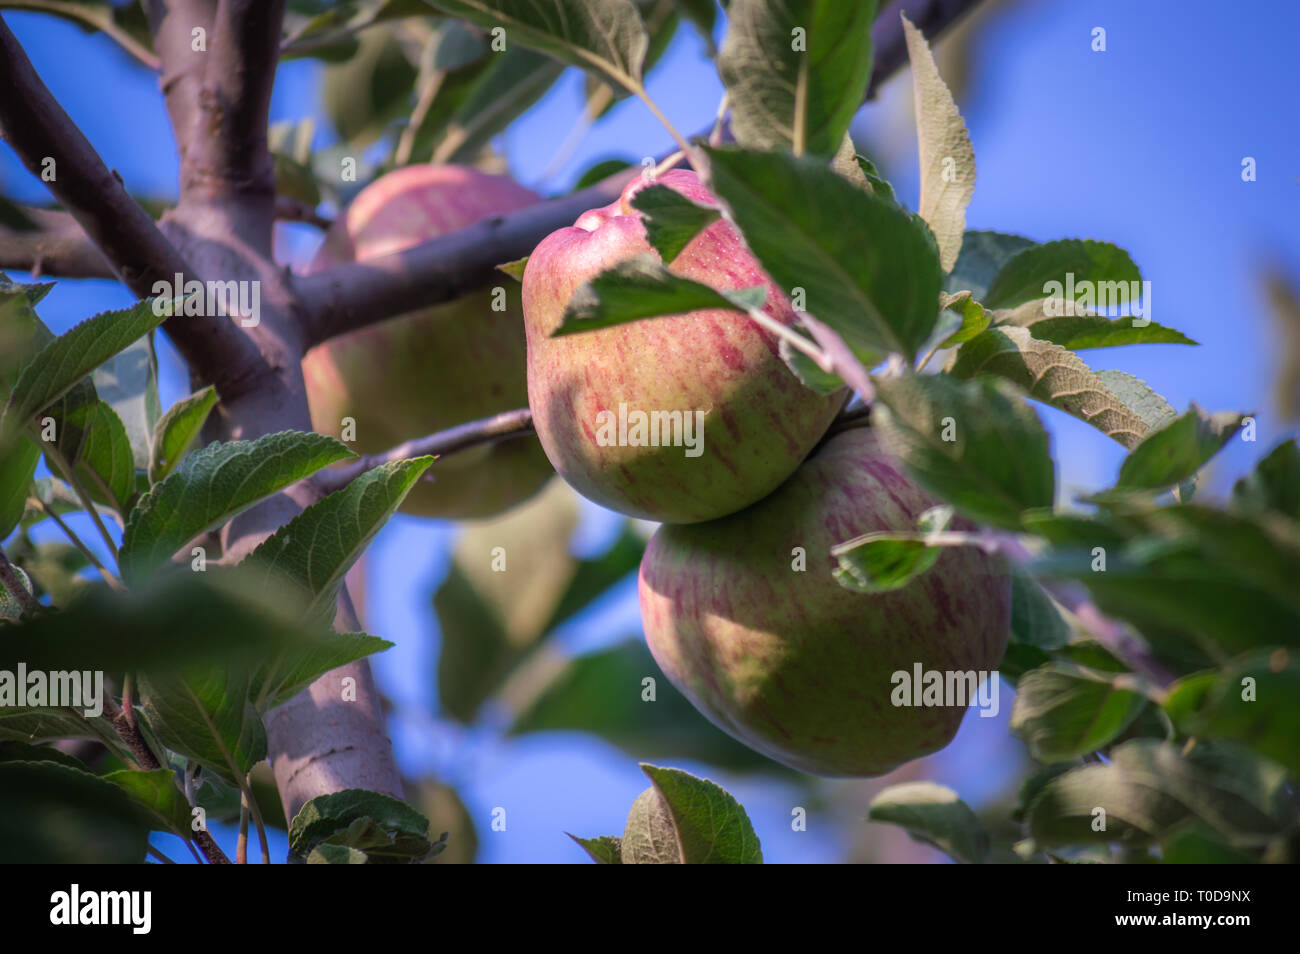 Apples hanging from branches ready to be harvested - Stock Image